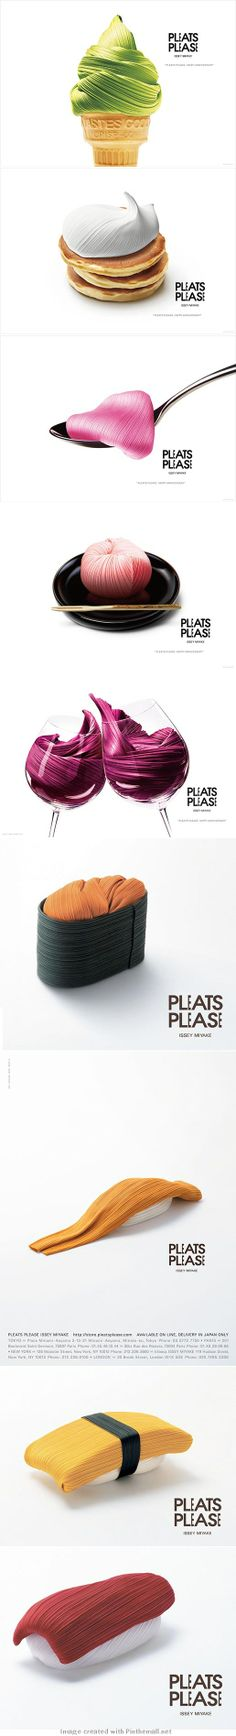 Issey Miyake 20th anniversary. Neautiful creativity #advertising #posters inspired by delicious foods | Ivan Giorgetti